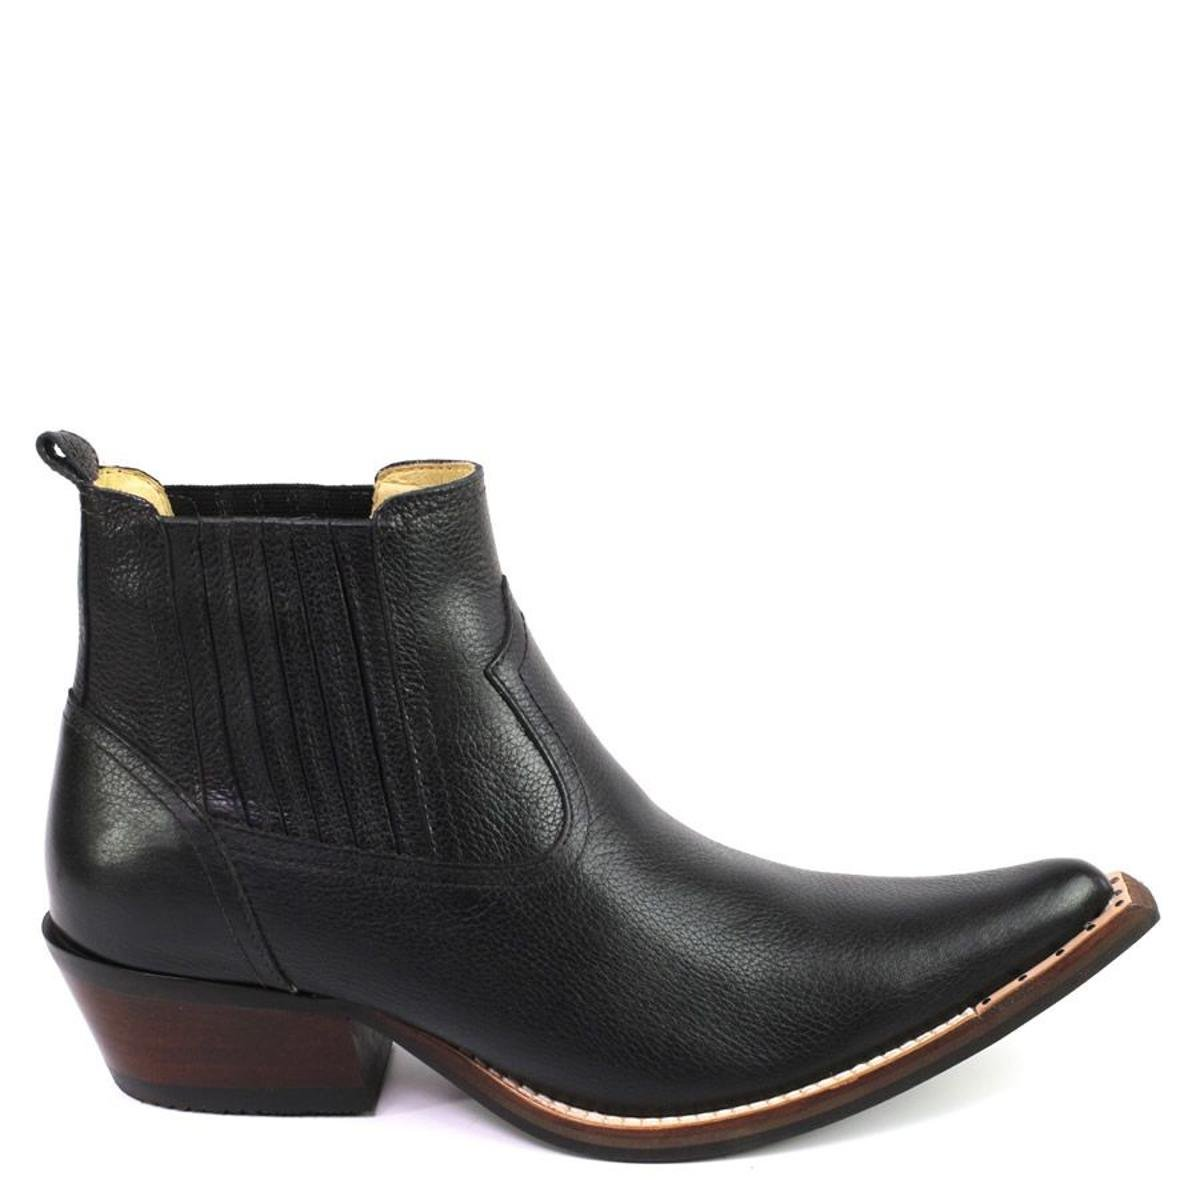 Preto Bota Shoes Bota Franca Country Top Country Shoes Franca Top qSznxwIzfv